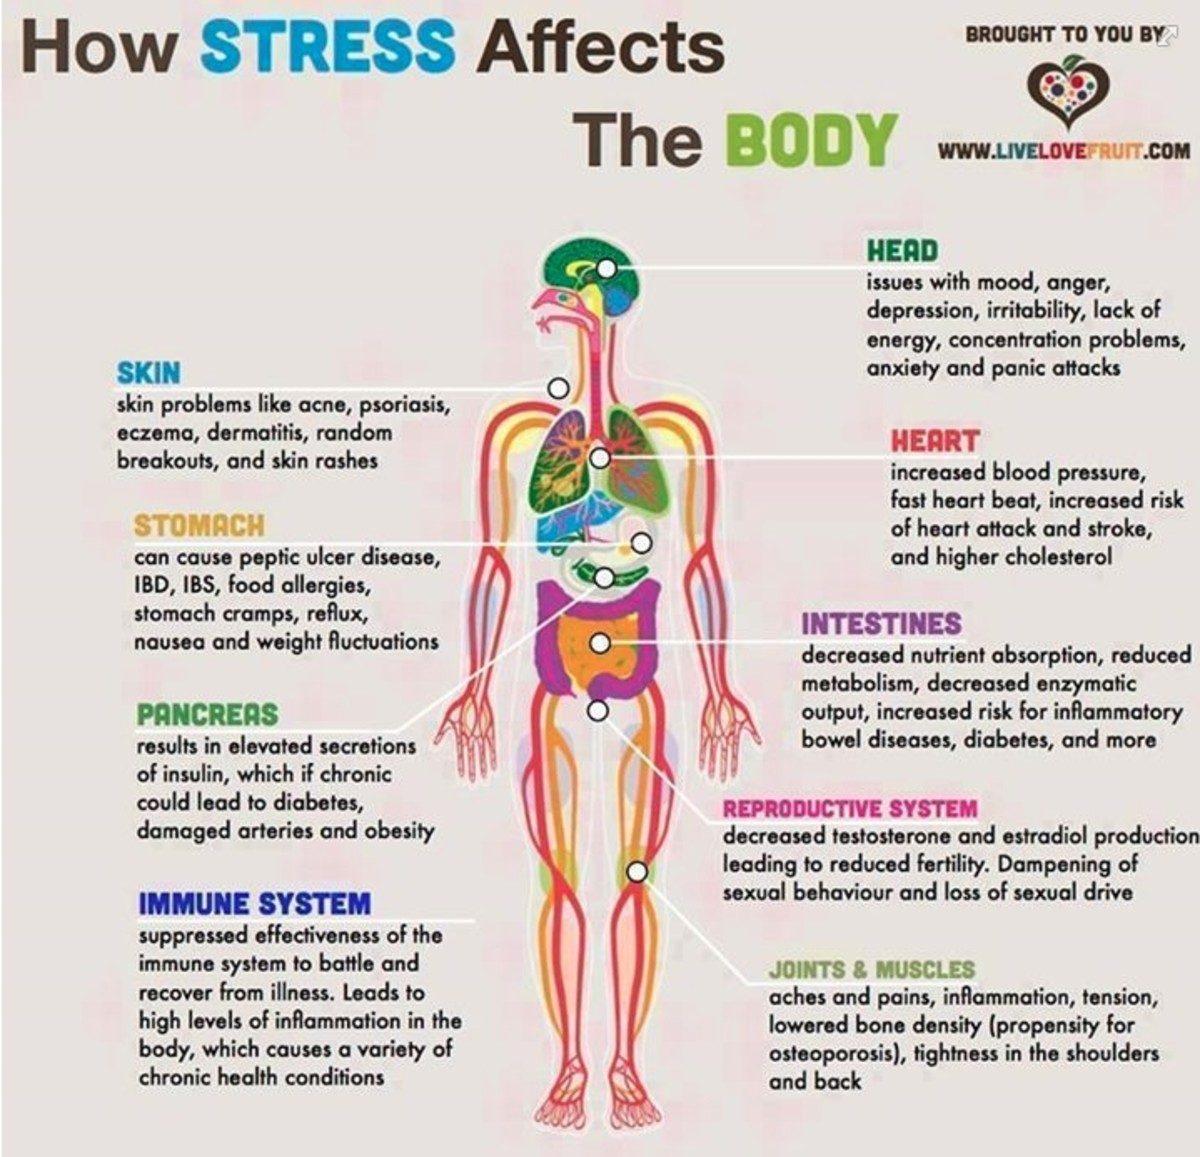 How stress affects the body!